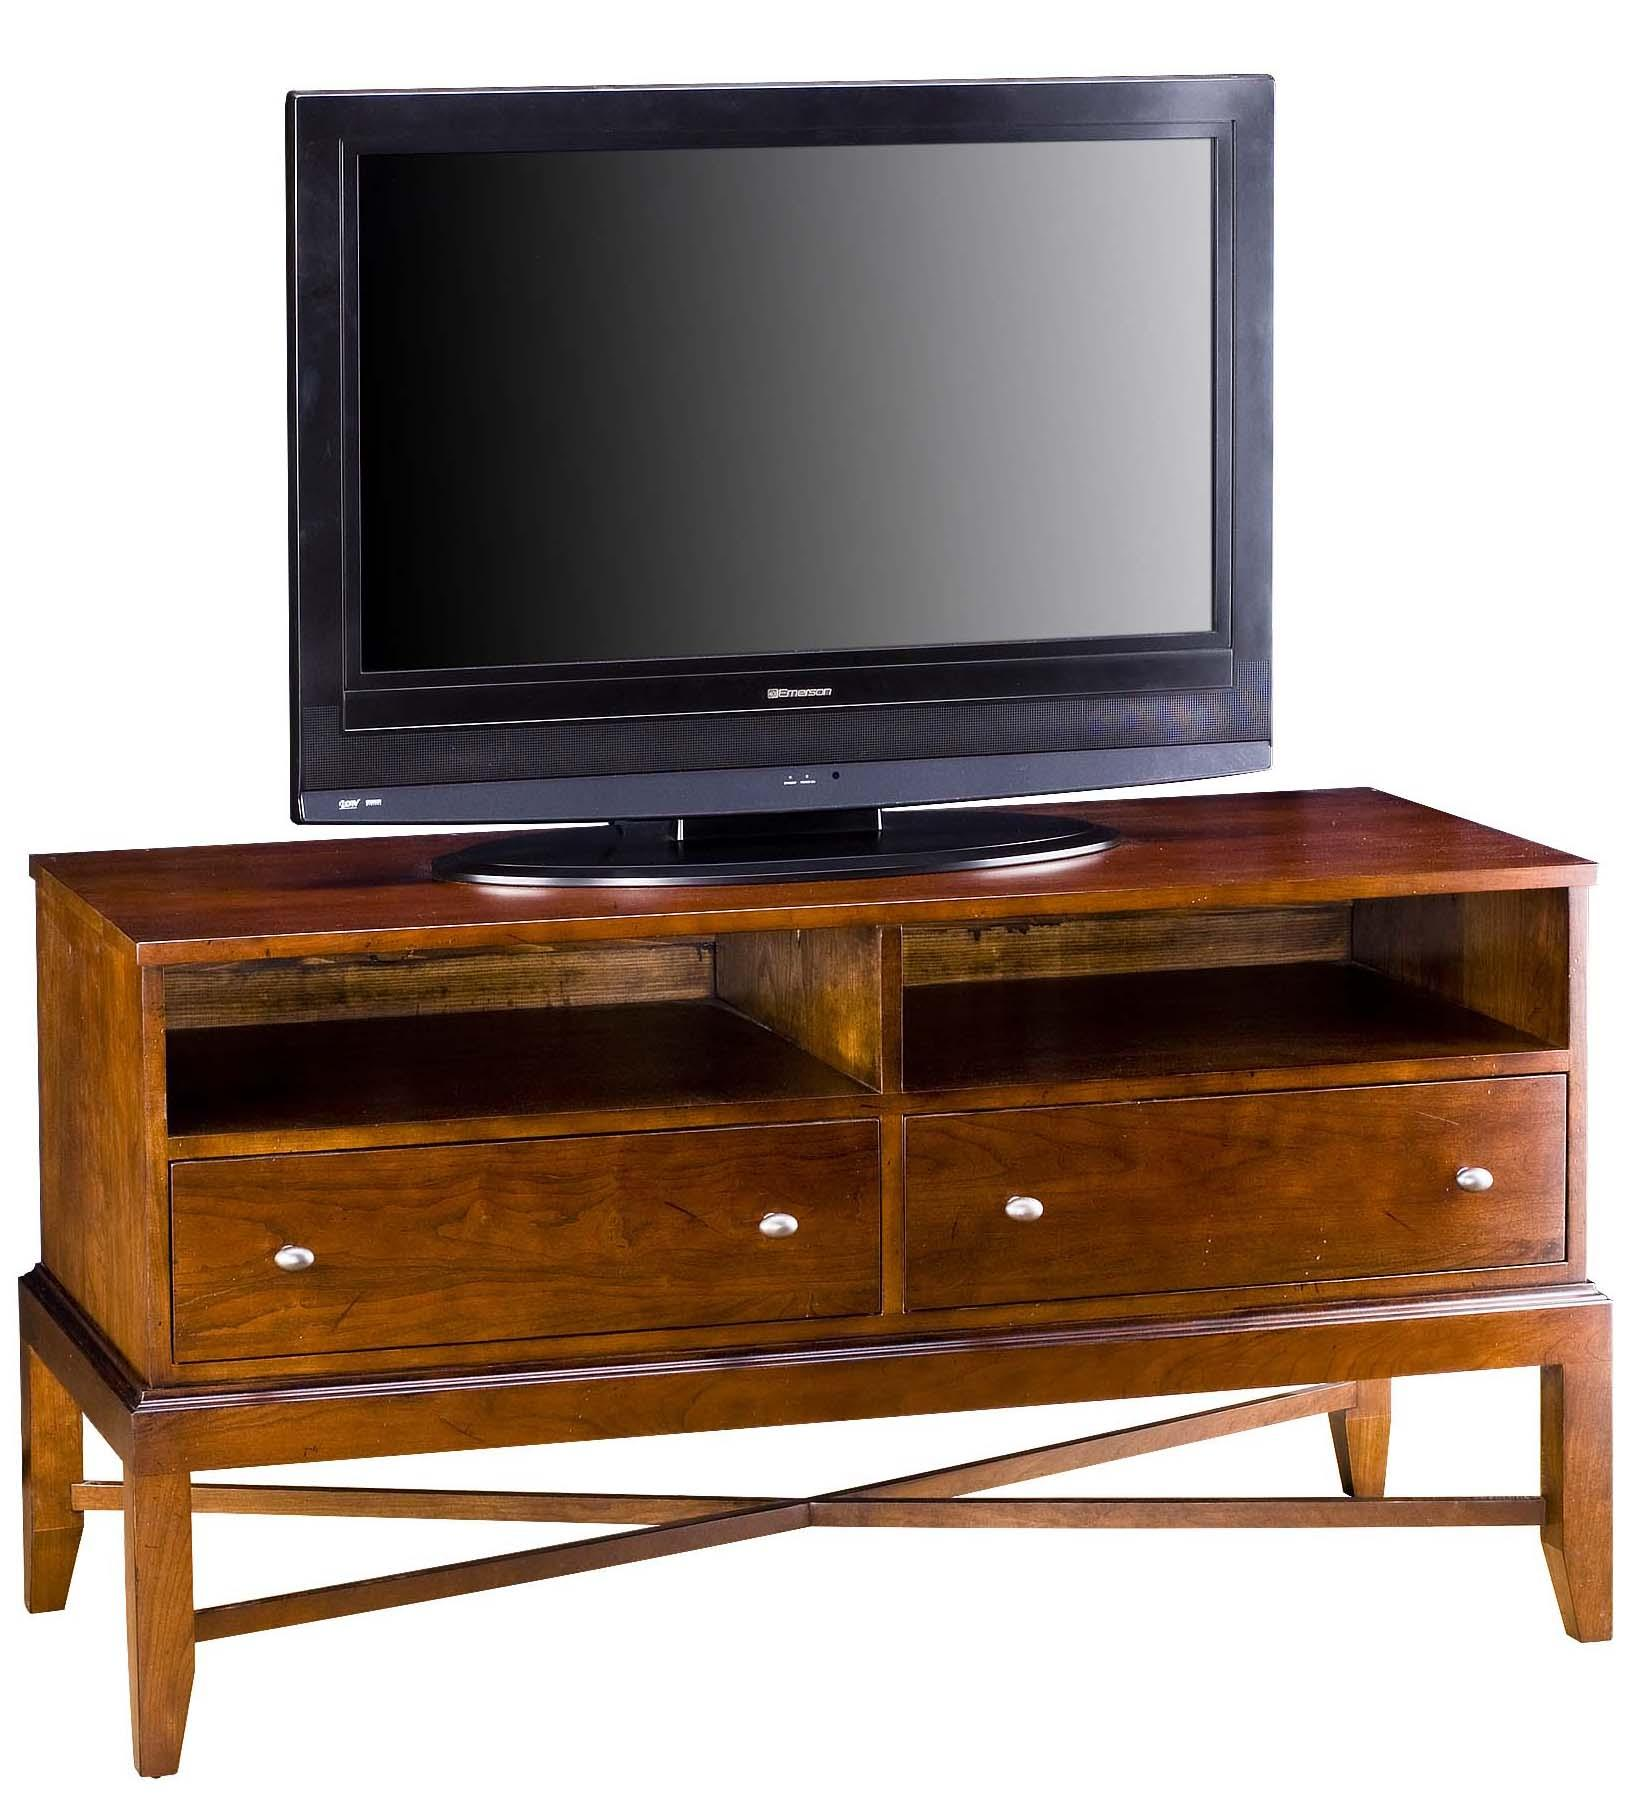 Greenbrier Living Talmadge Media Console - Item Number: 39657